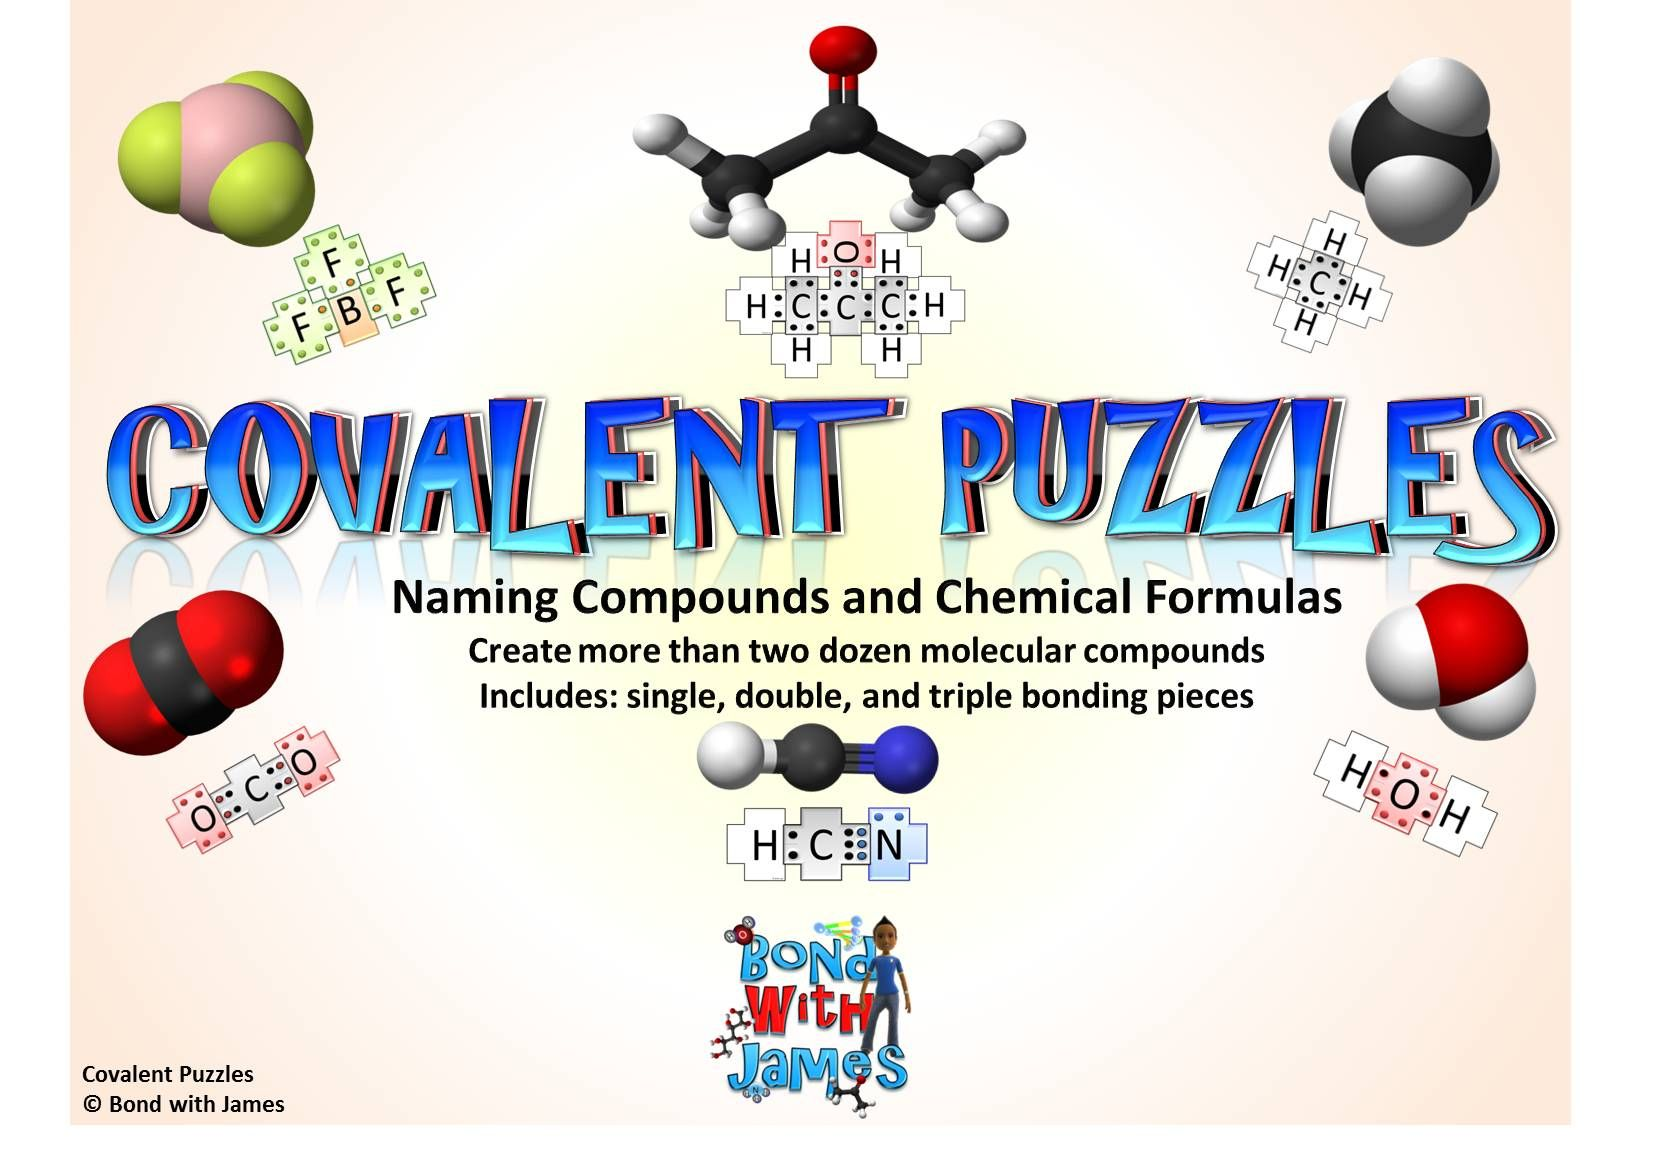 Over 2 Dozen Molecular Compounds Can Be Built With The Covalent Puzzle Pieces Allow Students